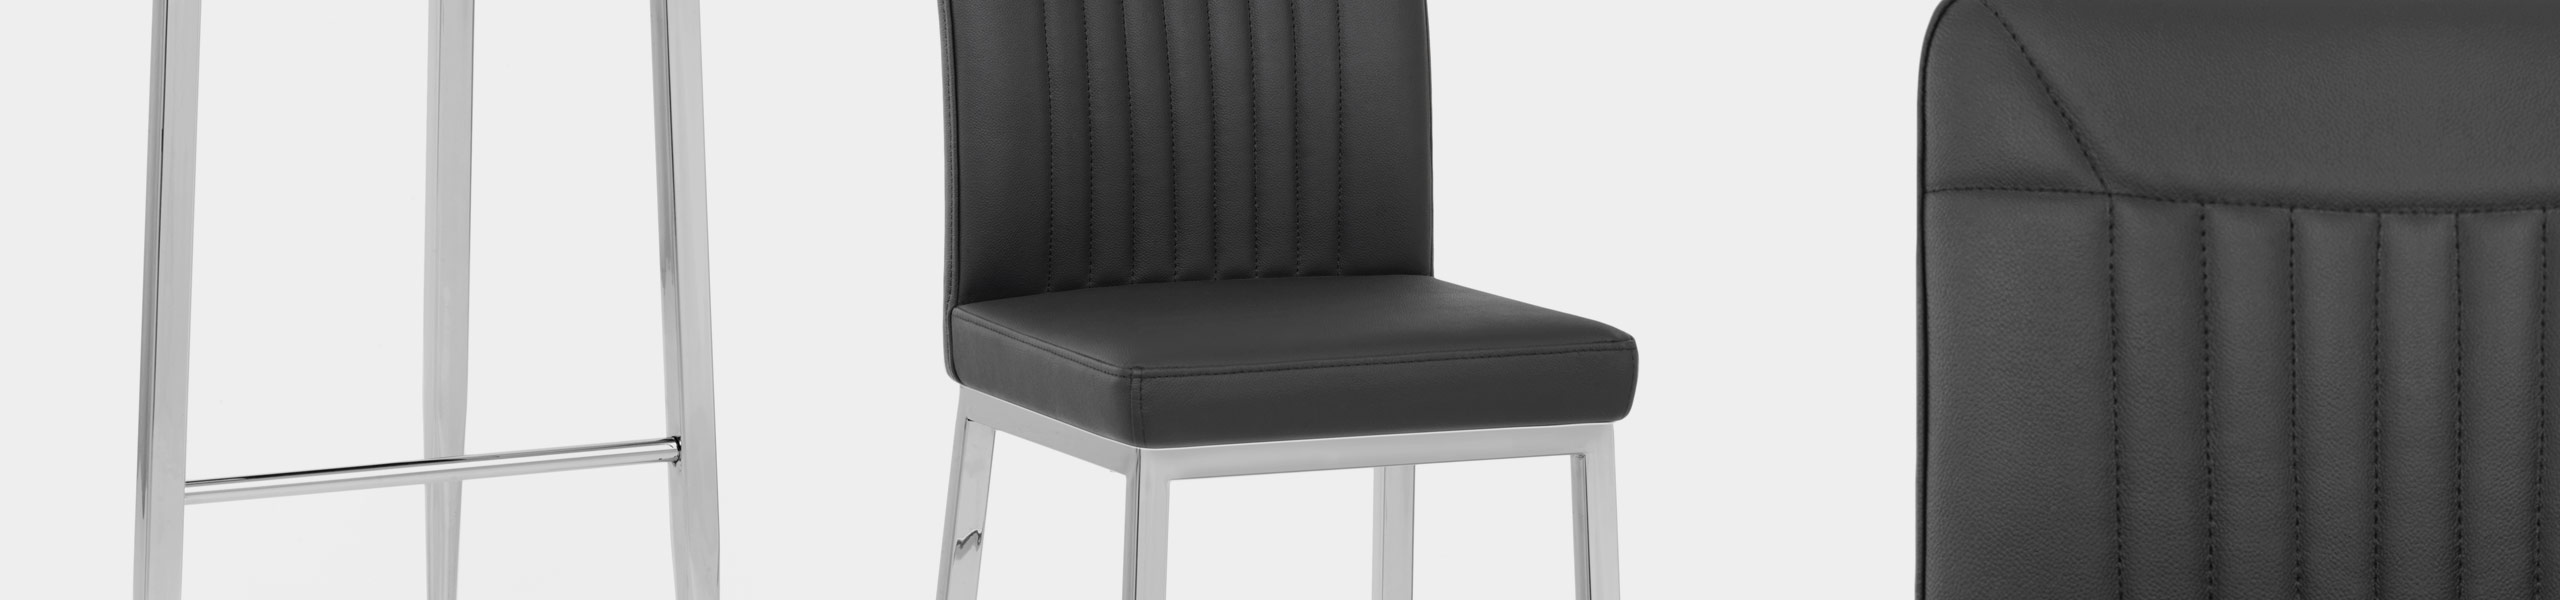 Jensen Stool Black Real Leather Video Banner